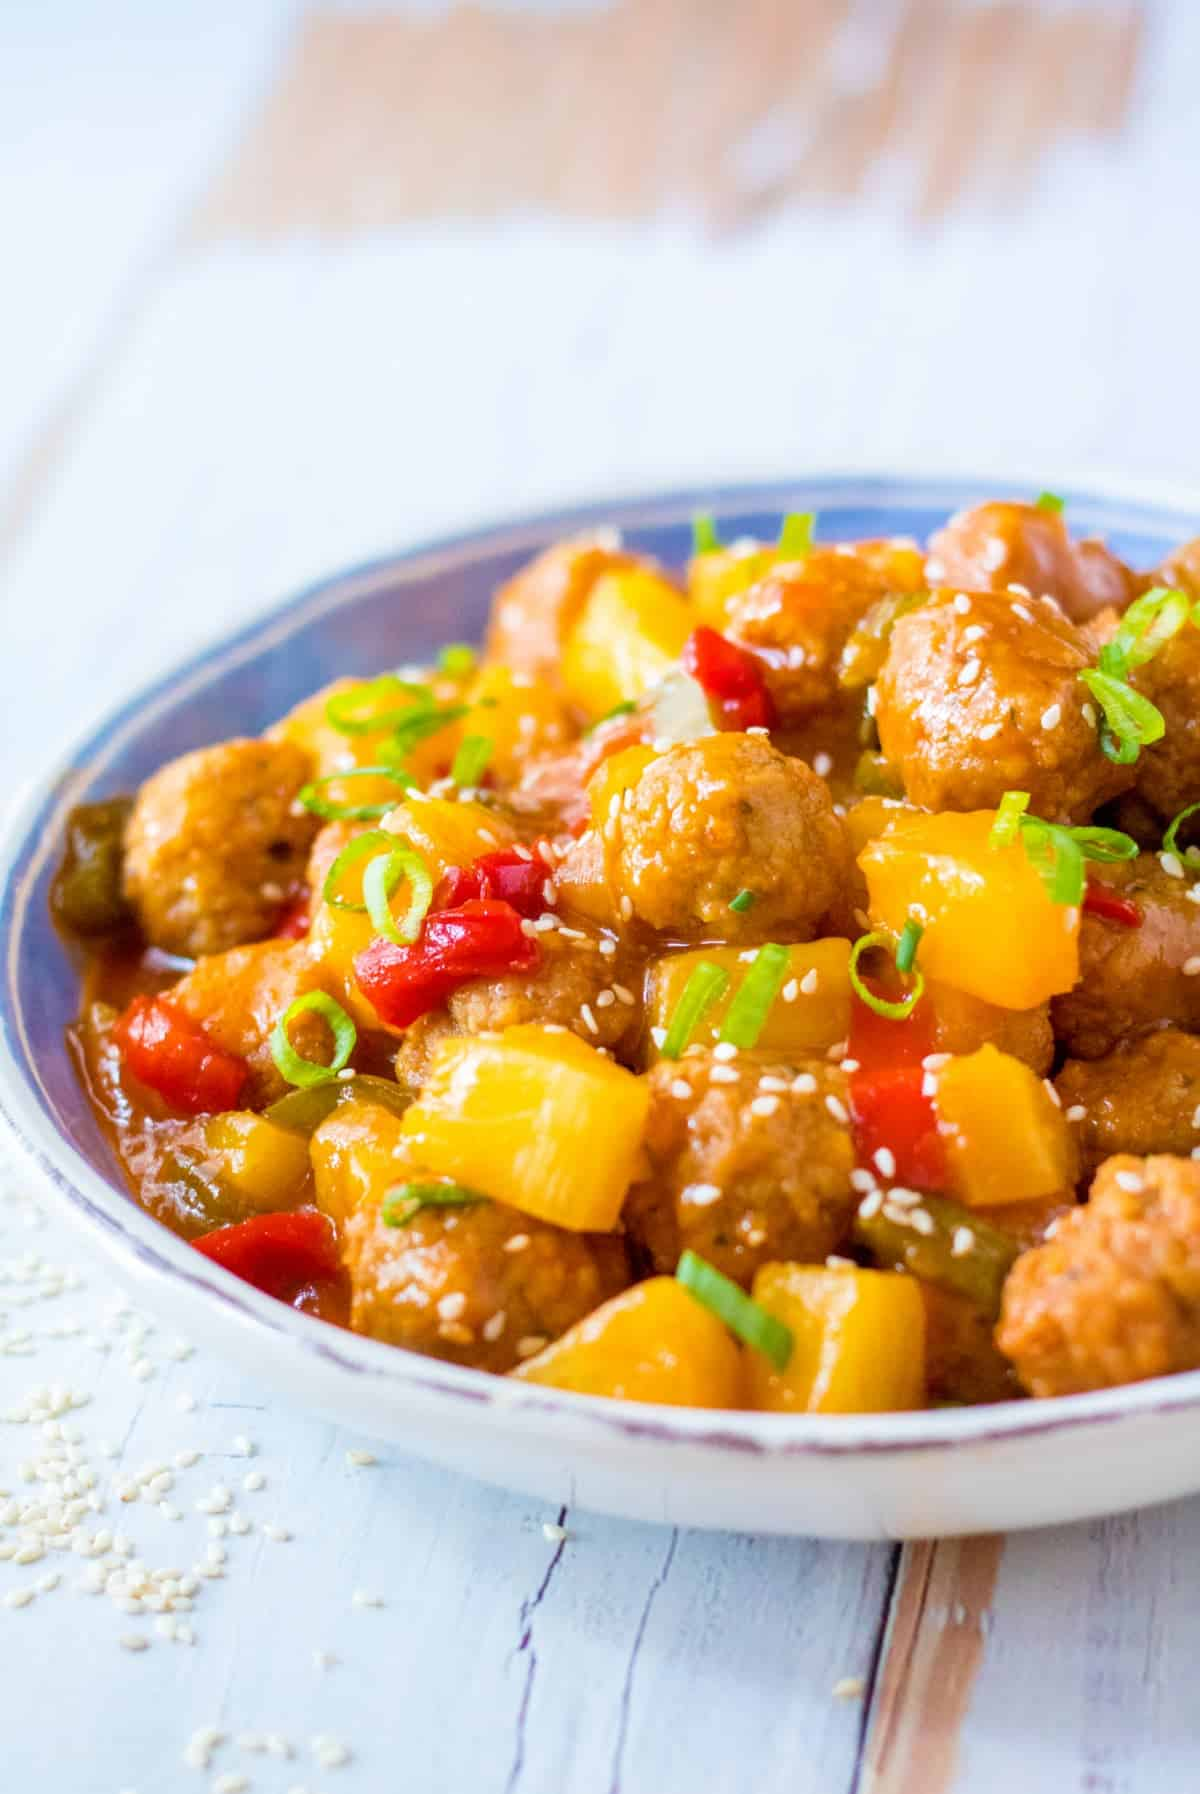 Sweet and sour meatballs in a bowl.